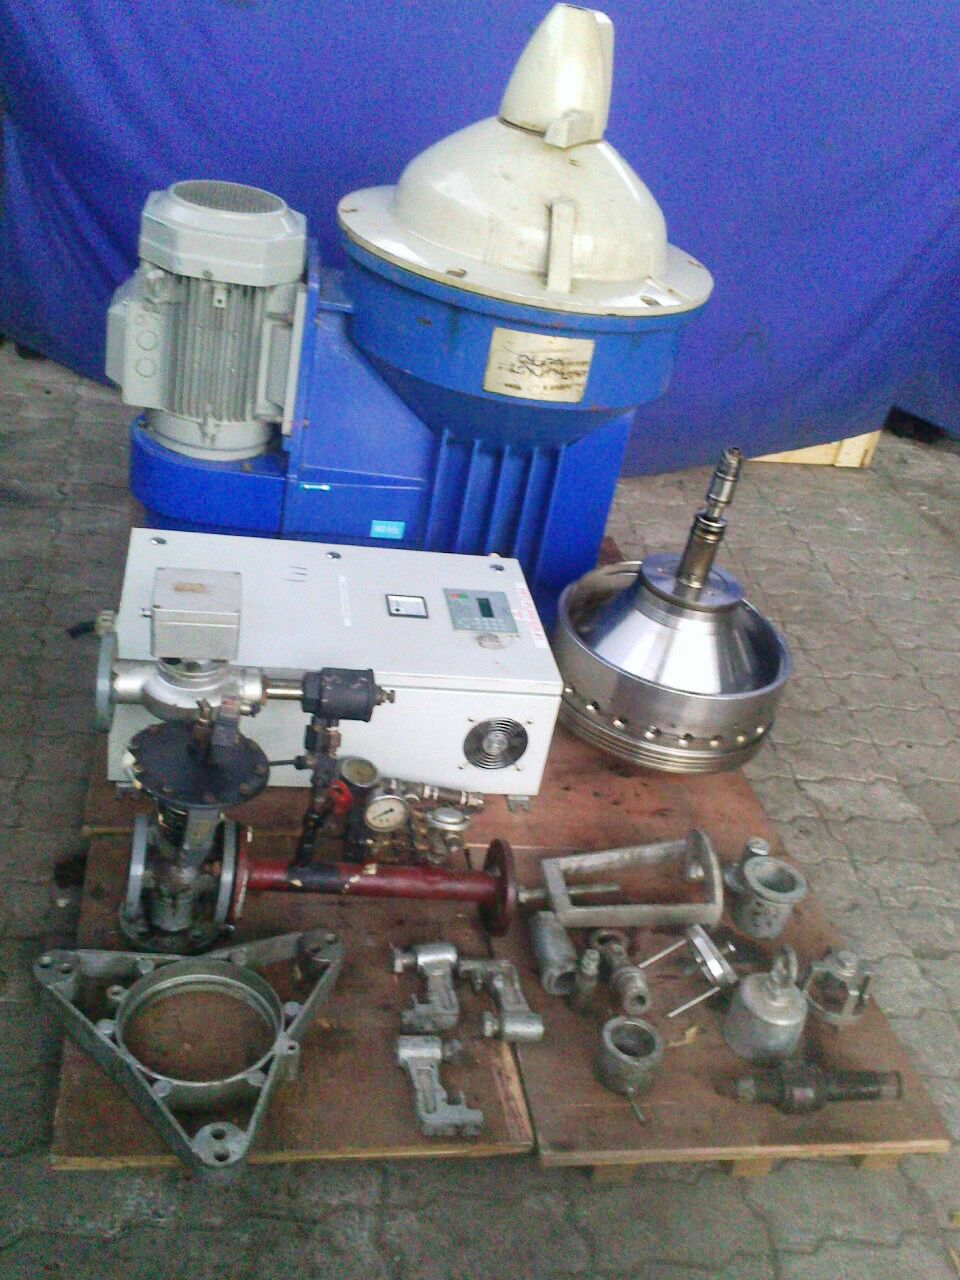 (2) Alfa-Laval S-967 fuel/lube oil purifiers, 316SS.